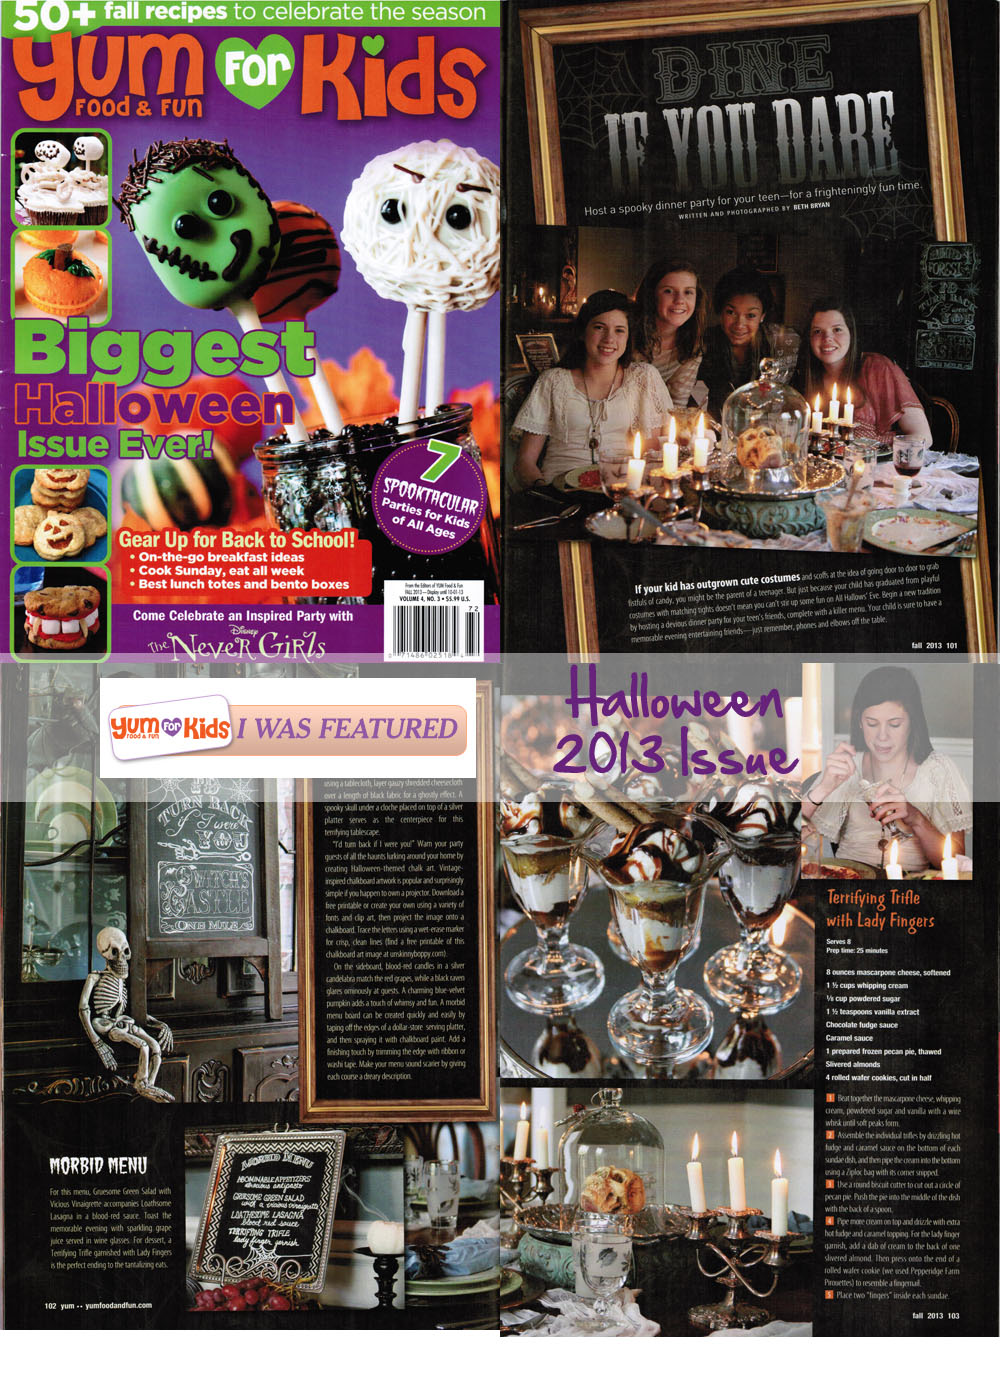 halloween2013_yum_food_and_fun_magazine